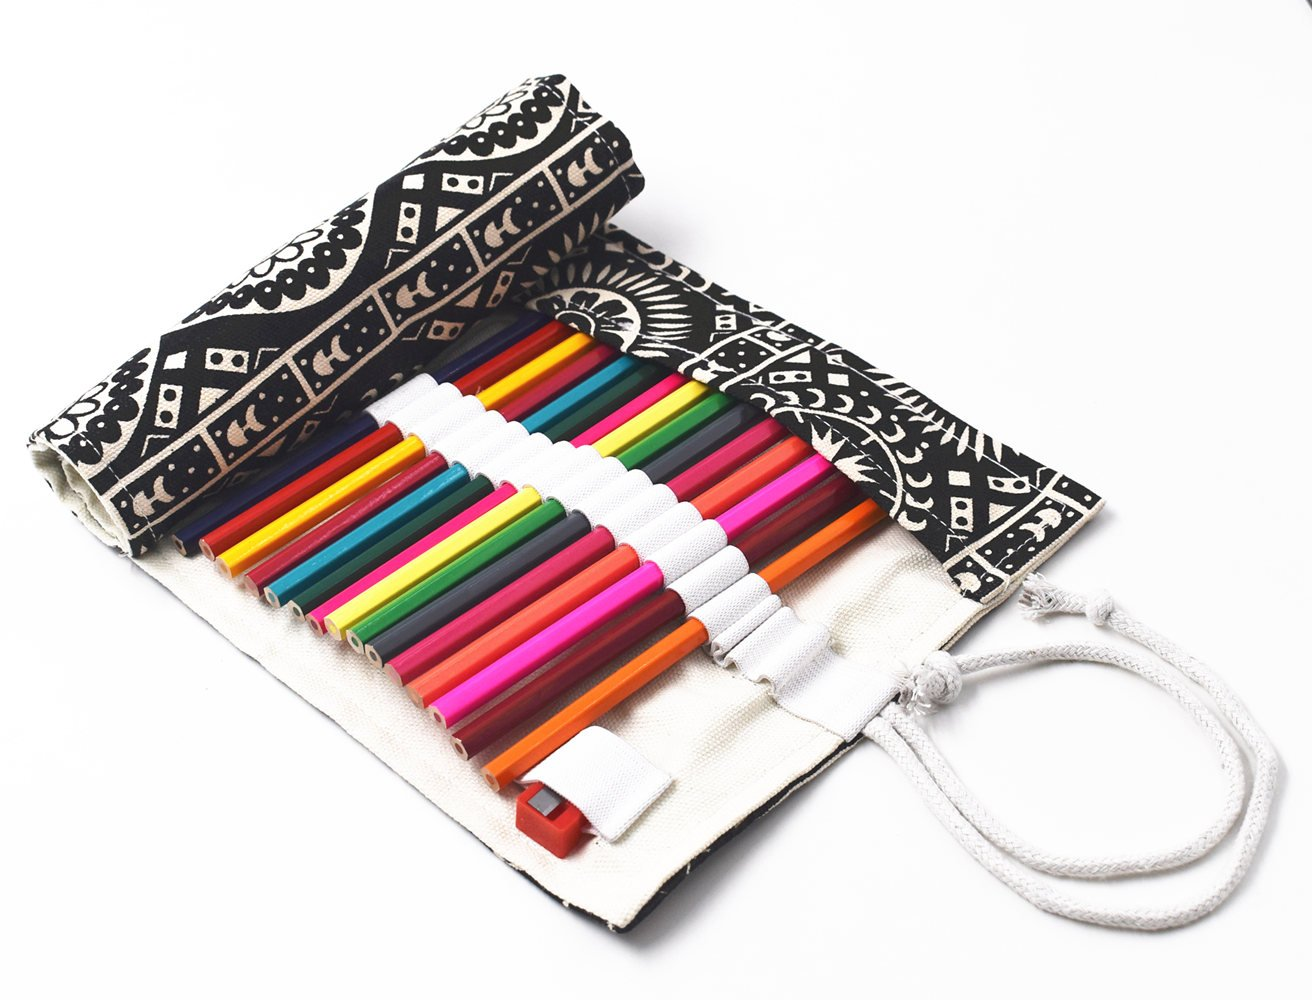 RayLineDo 36 Holes Canvas Pencil Wrap Roll Up Pencil Case Pen Holder Bag Storage Pouch Black Bohemia Style